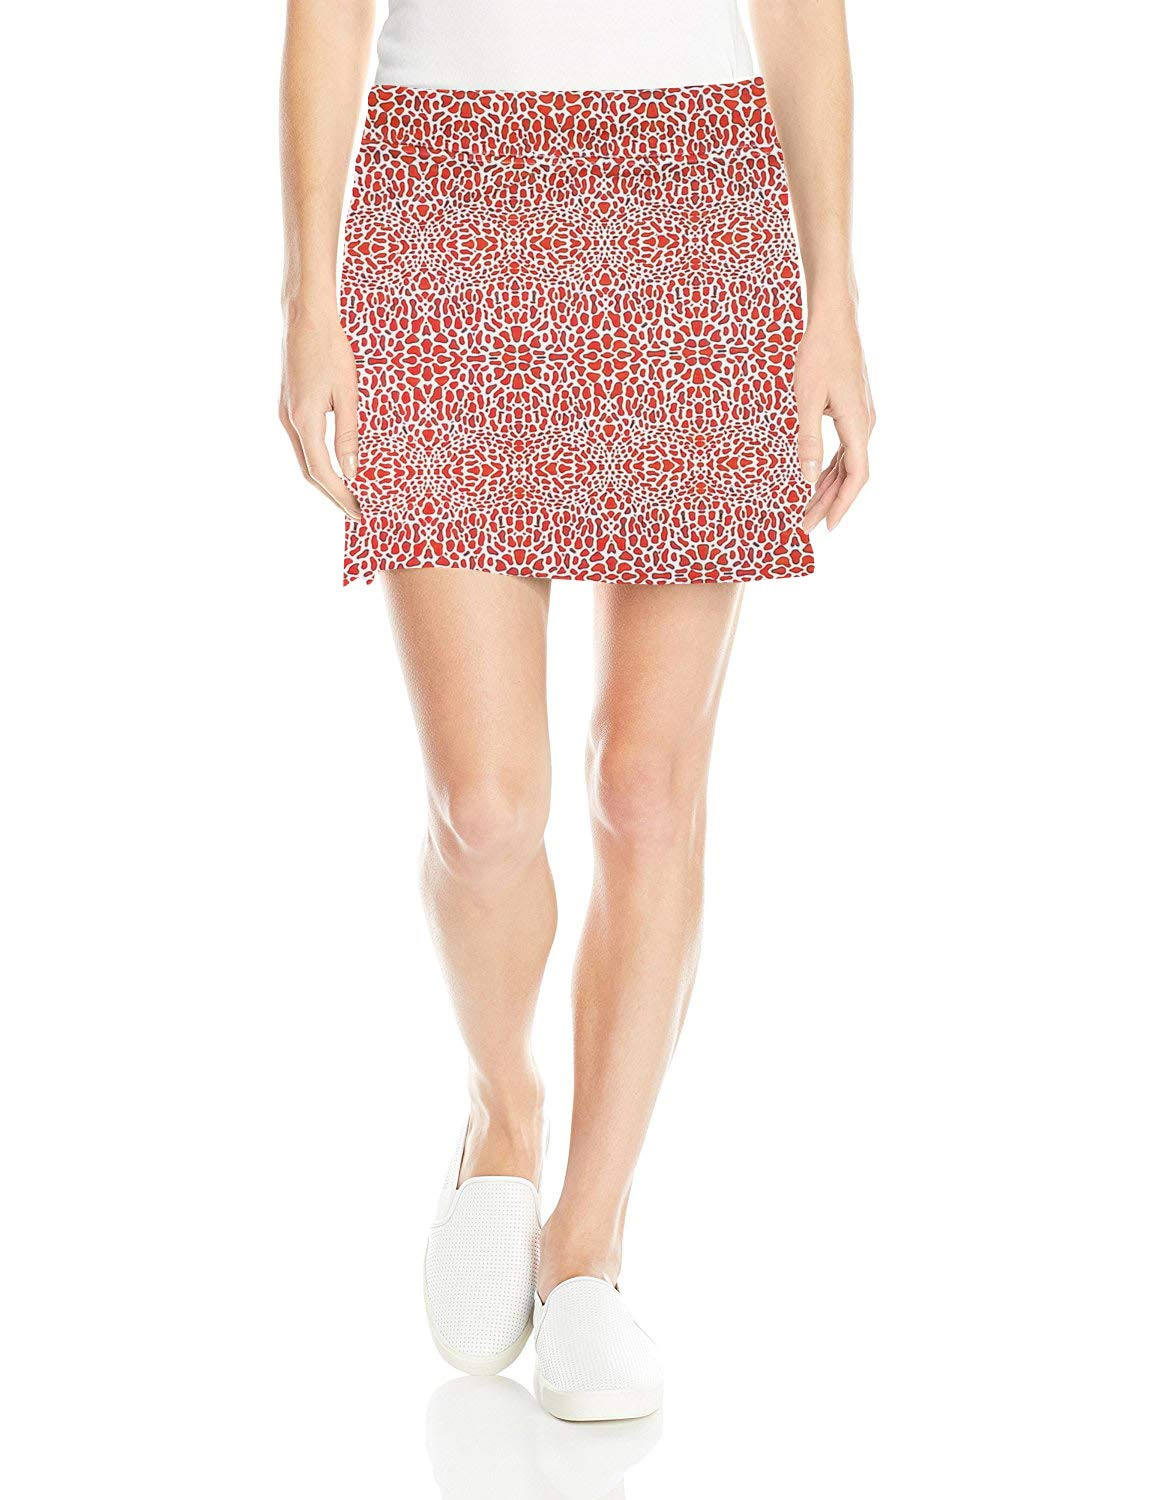 Colorado Clothing Women's Everyday Skort (Coral Mosaic, Large) by Colorado Clothing